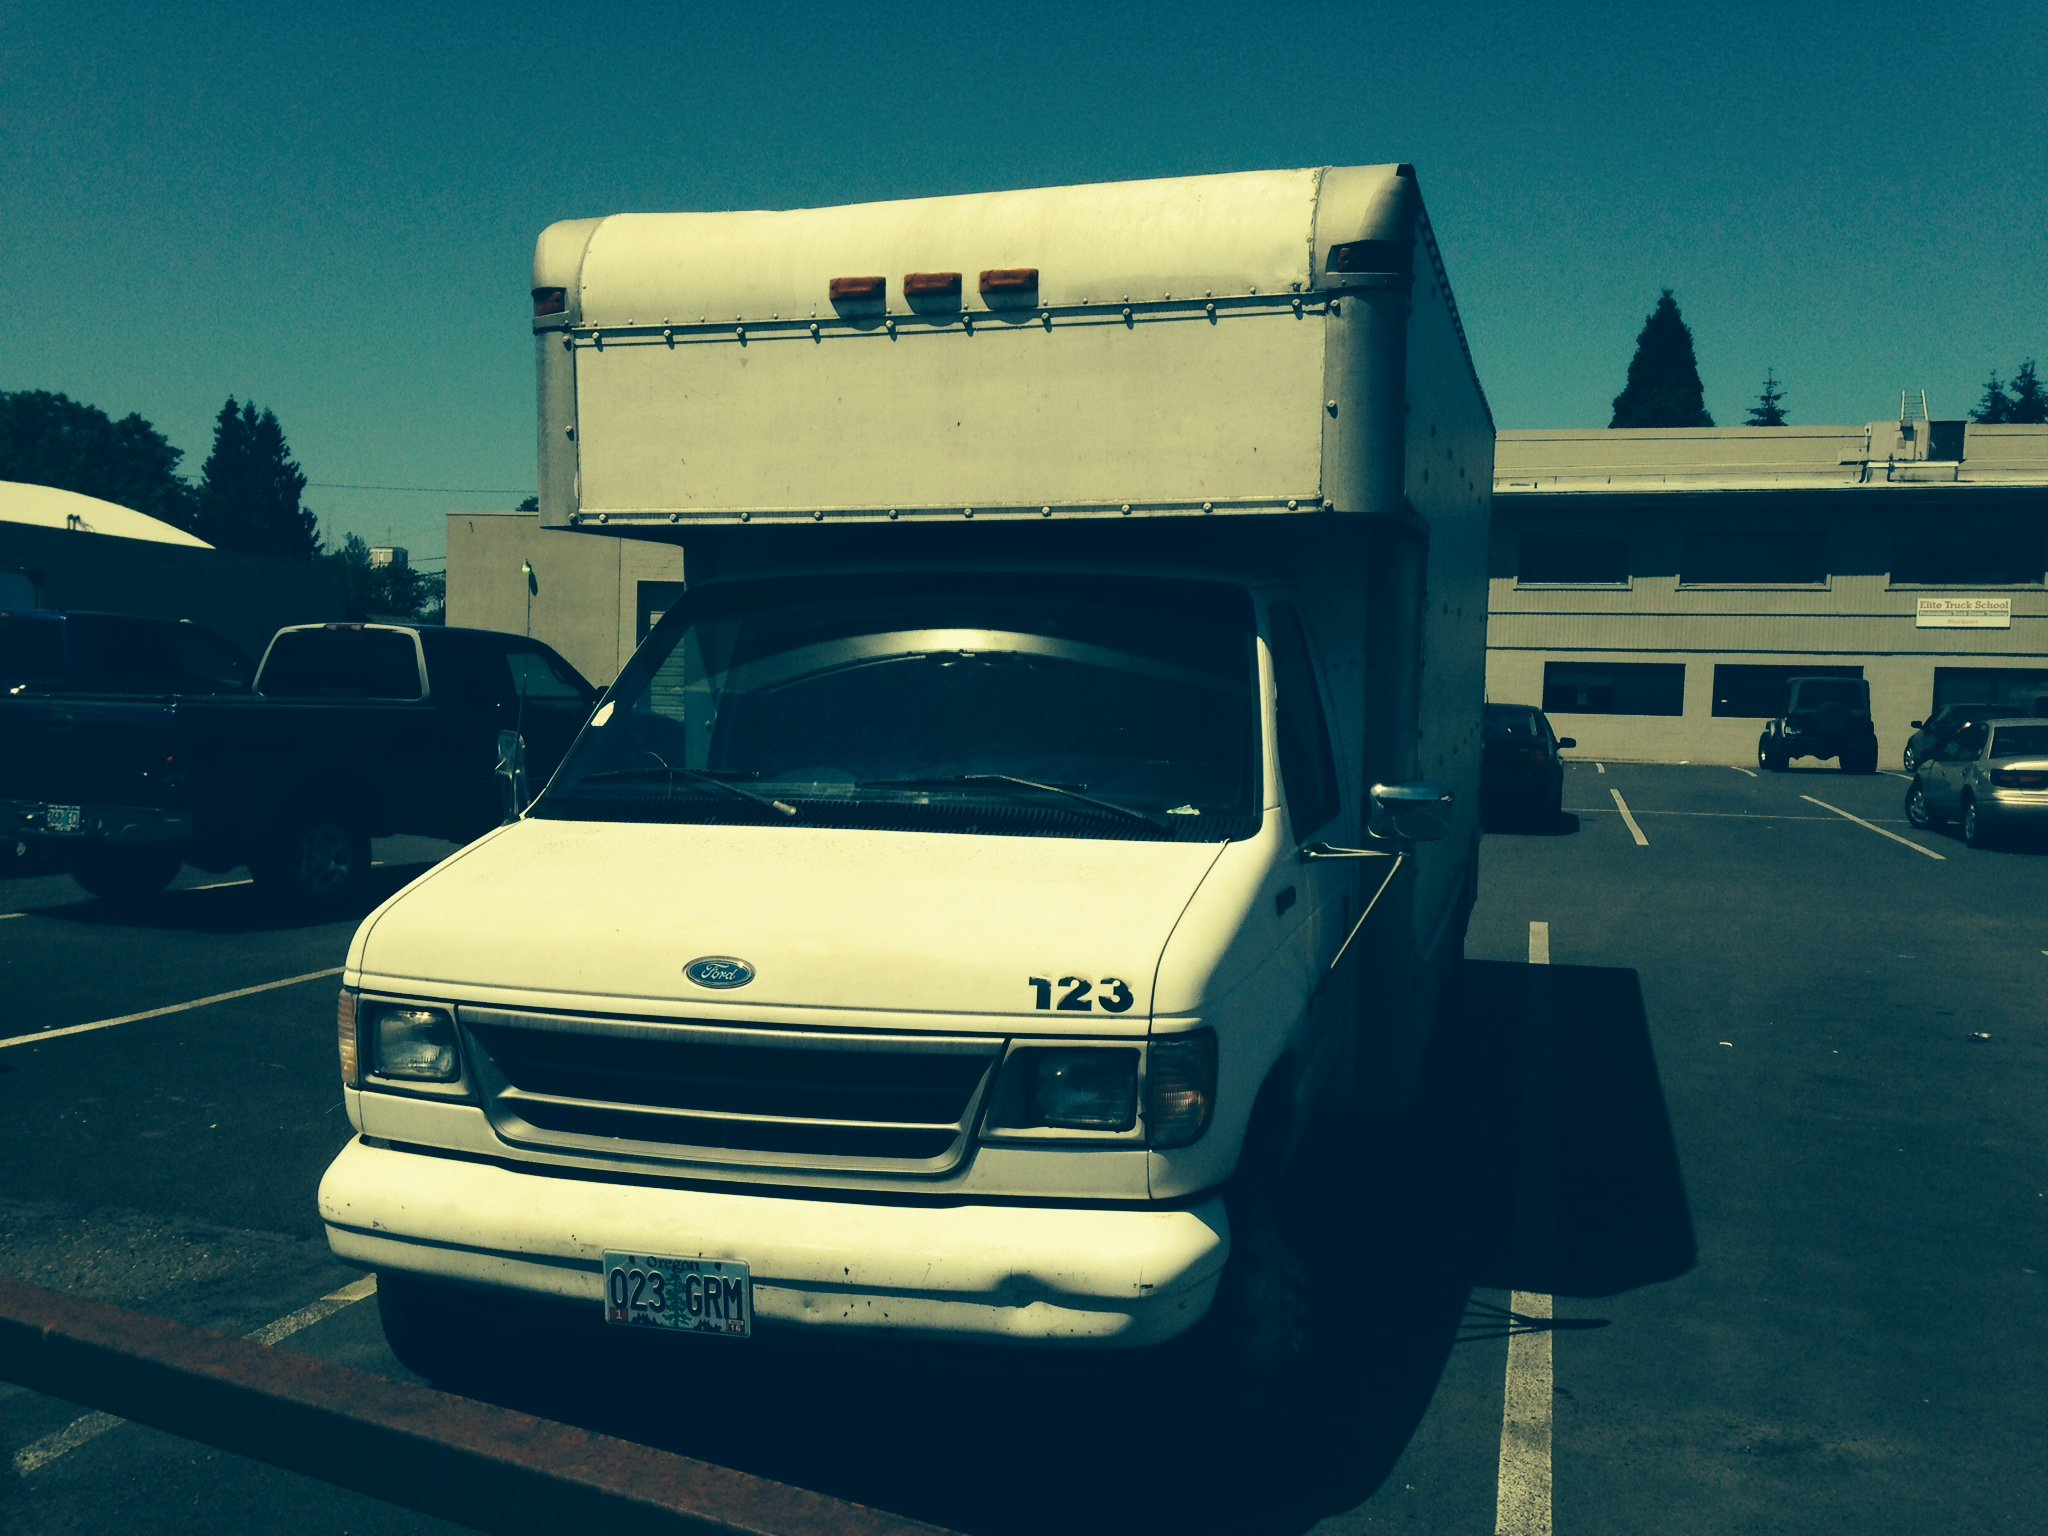 Ford E-350 box van used by Priority Moving Services